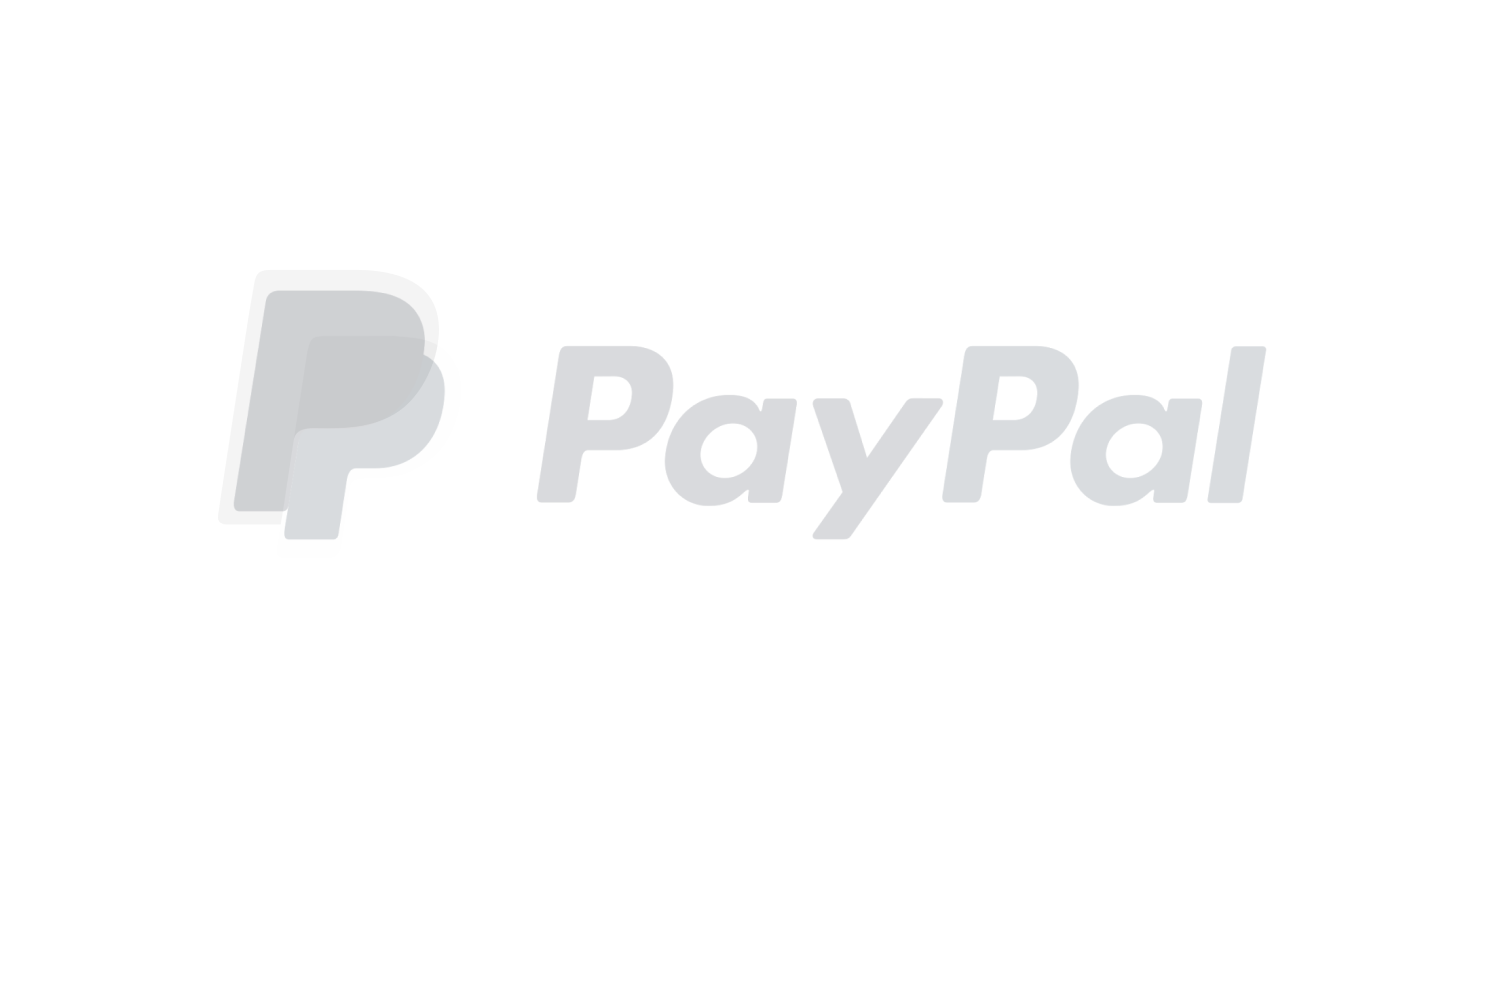 Paypal Landing page background